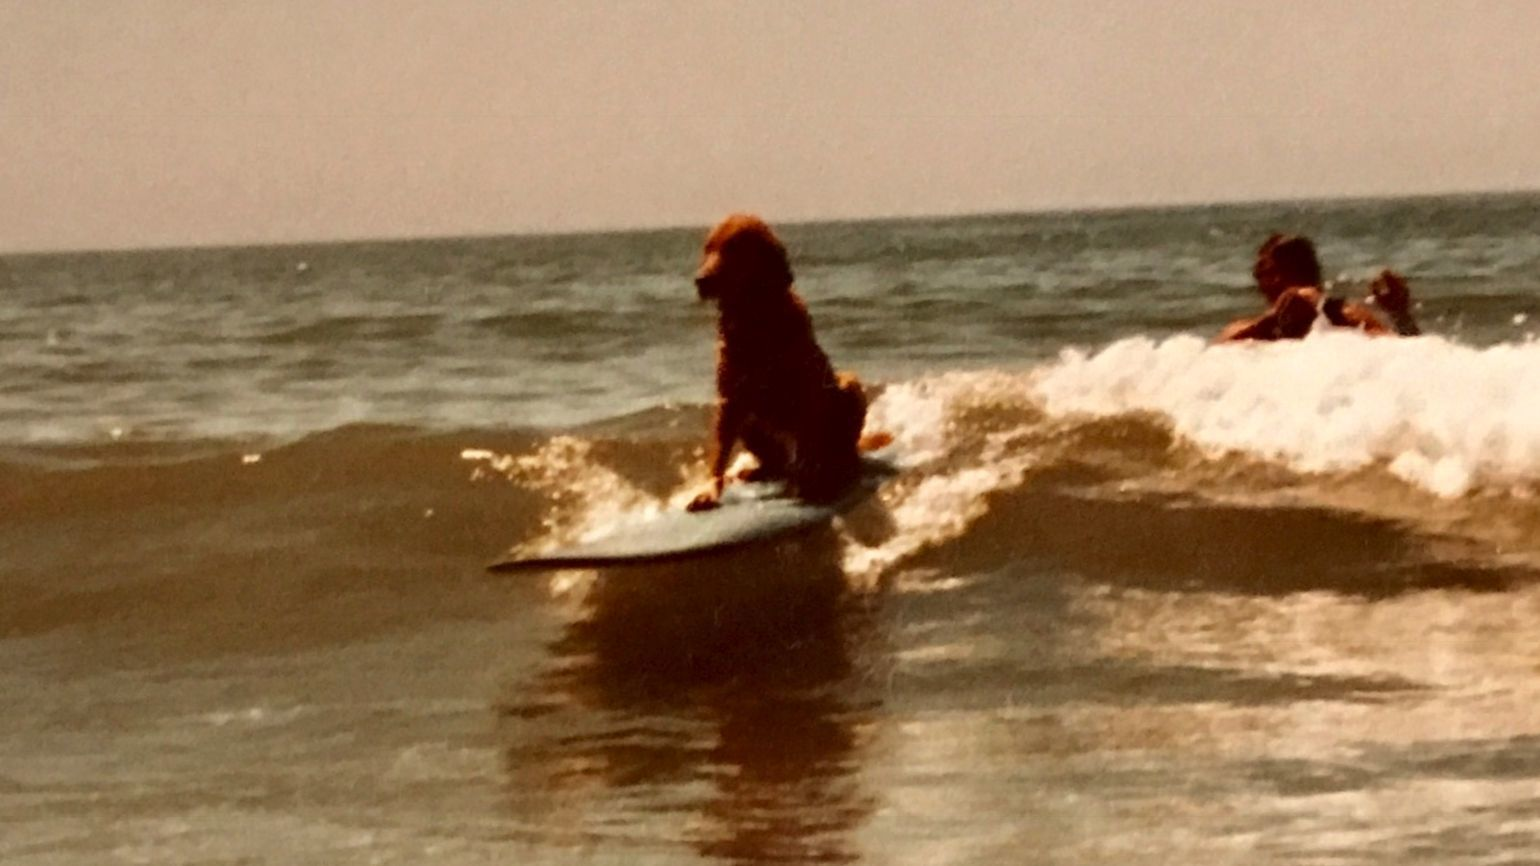 Timberwolf catching a wave